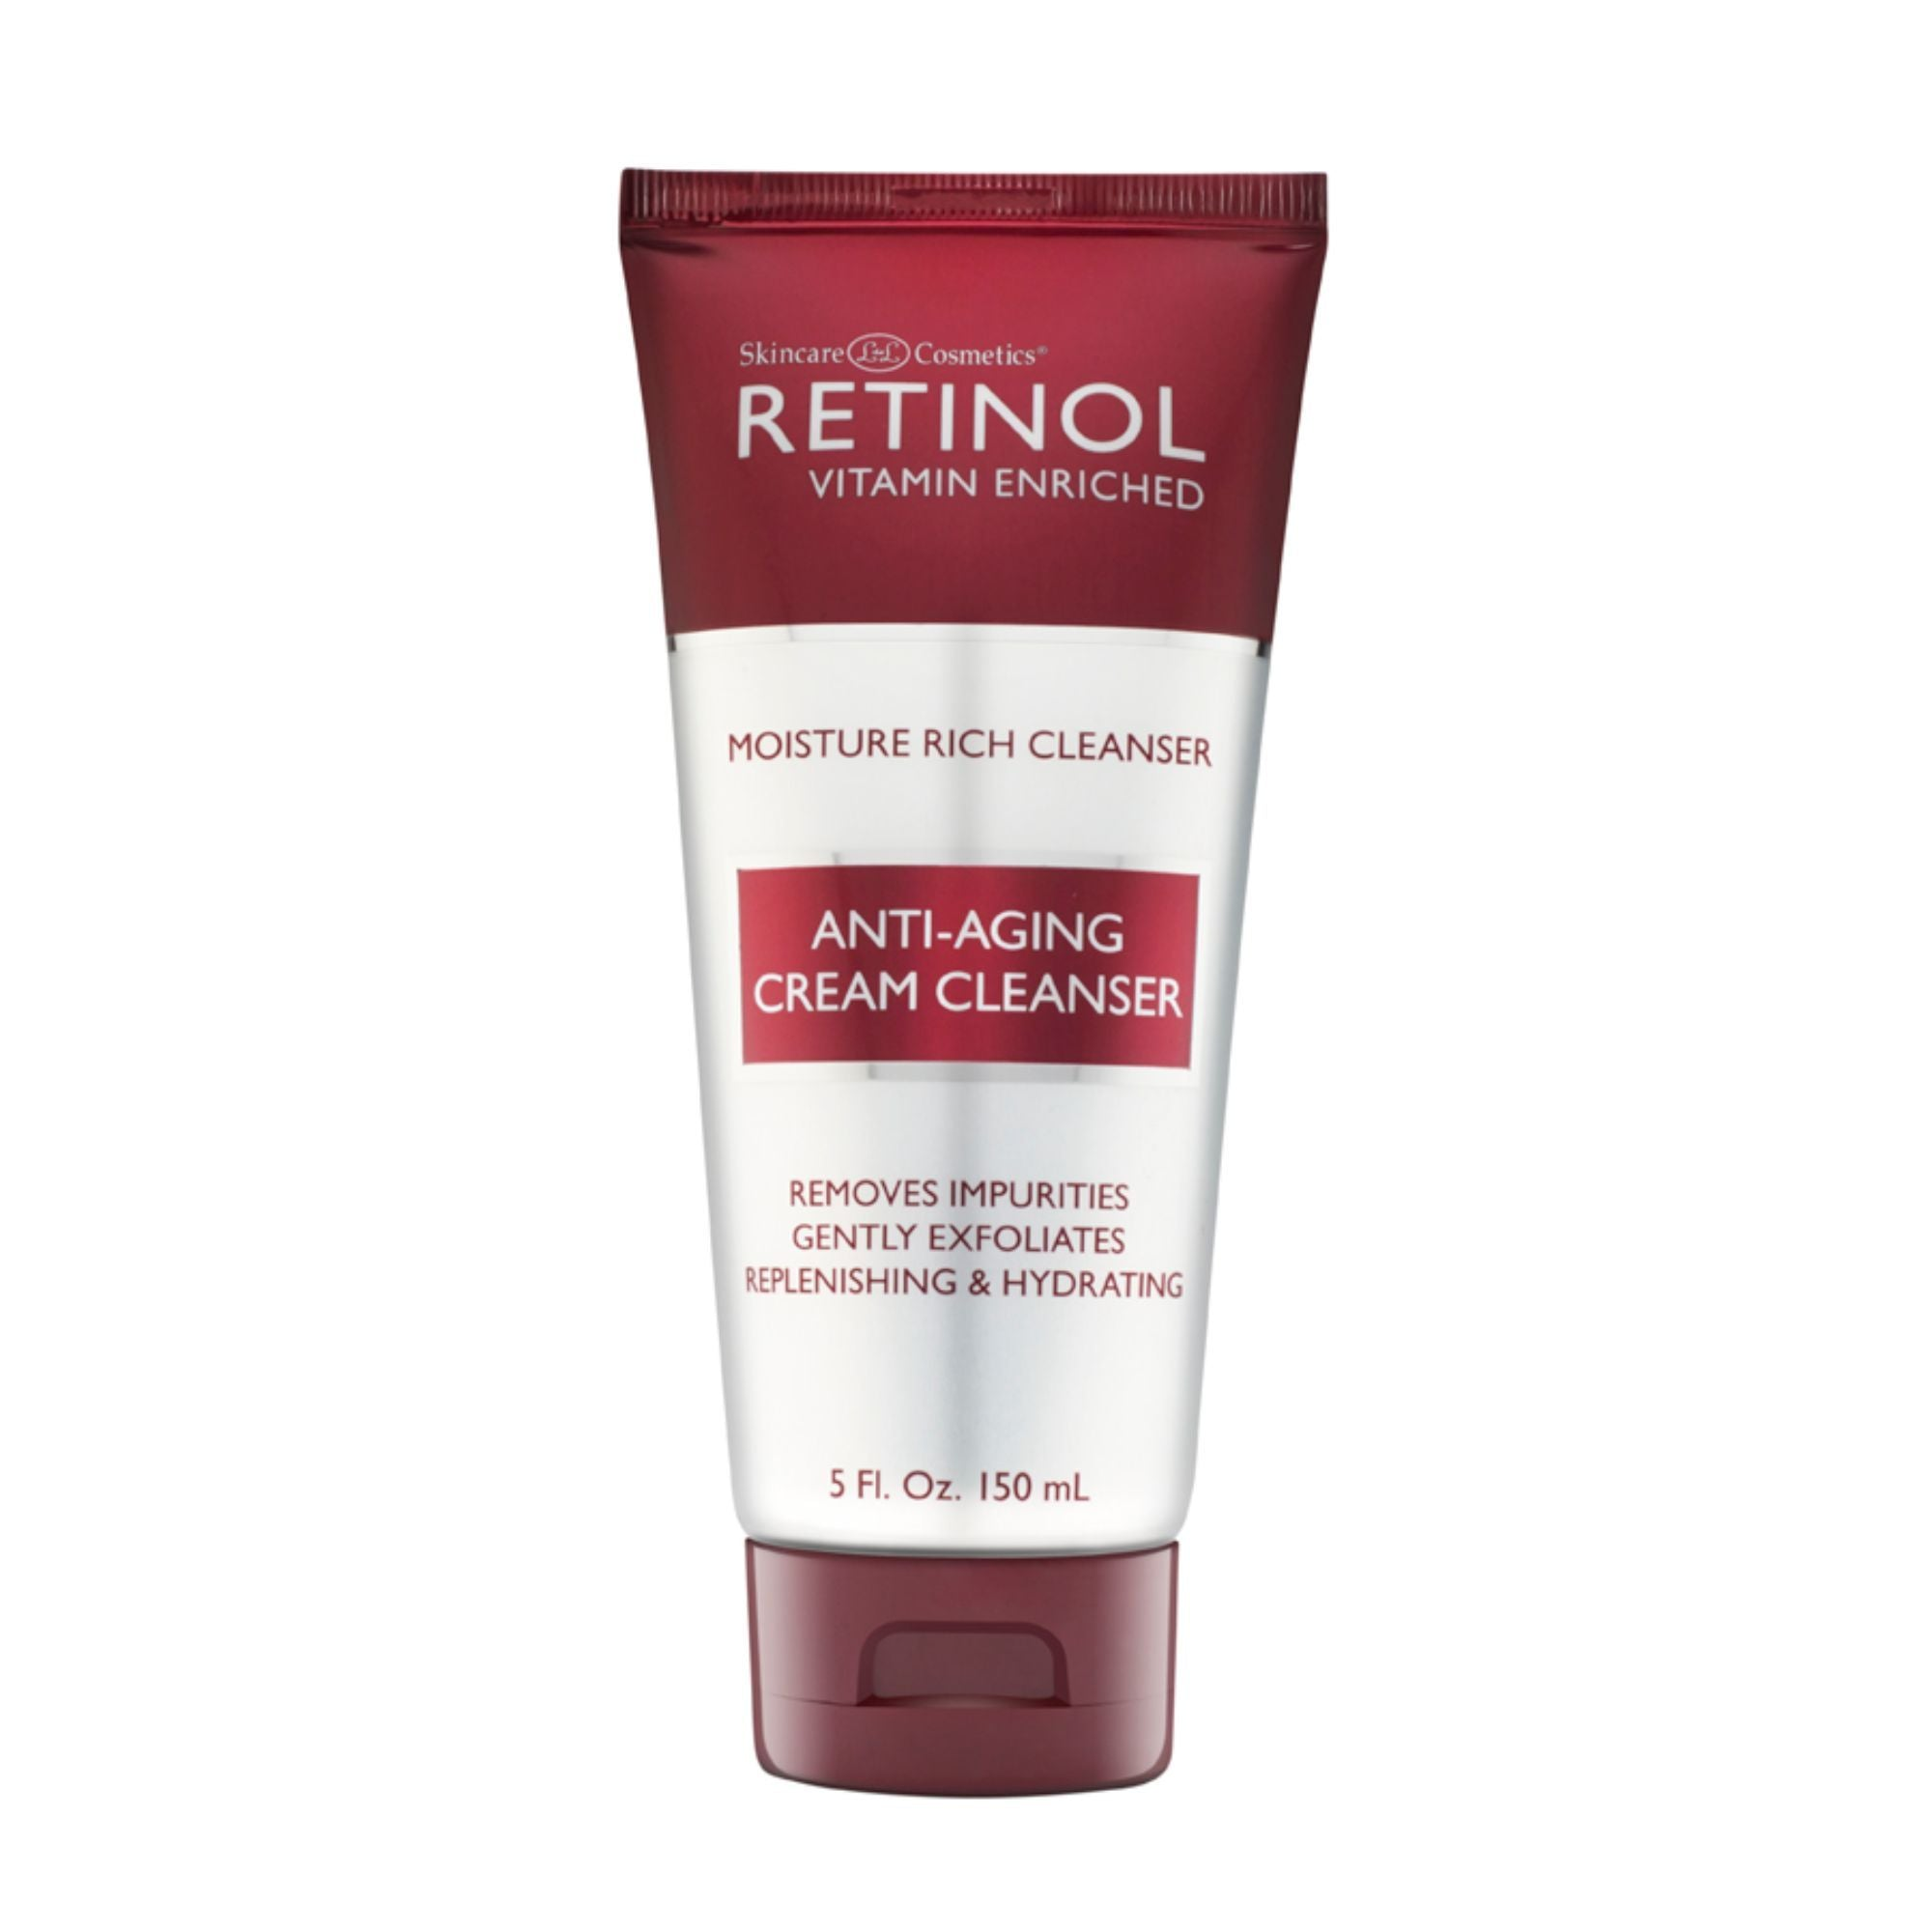 Anti-Aging Cream Cleanser